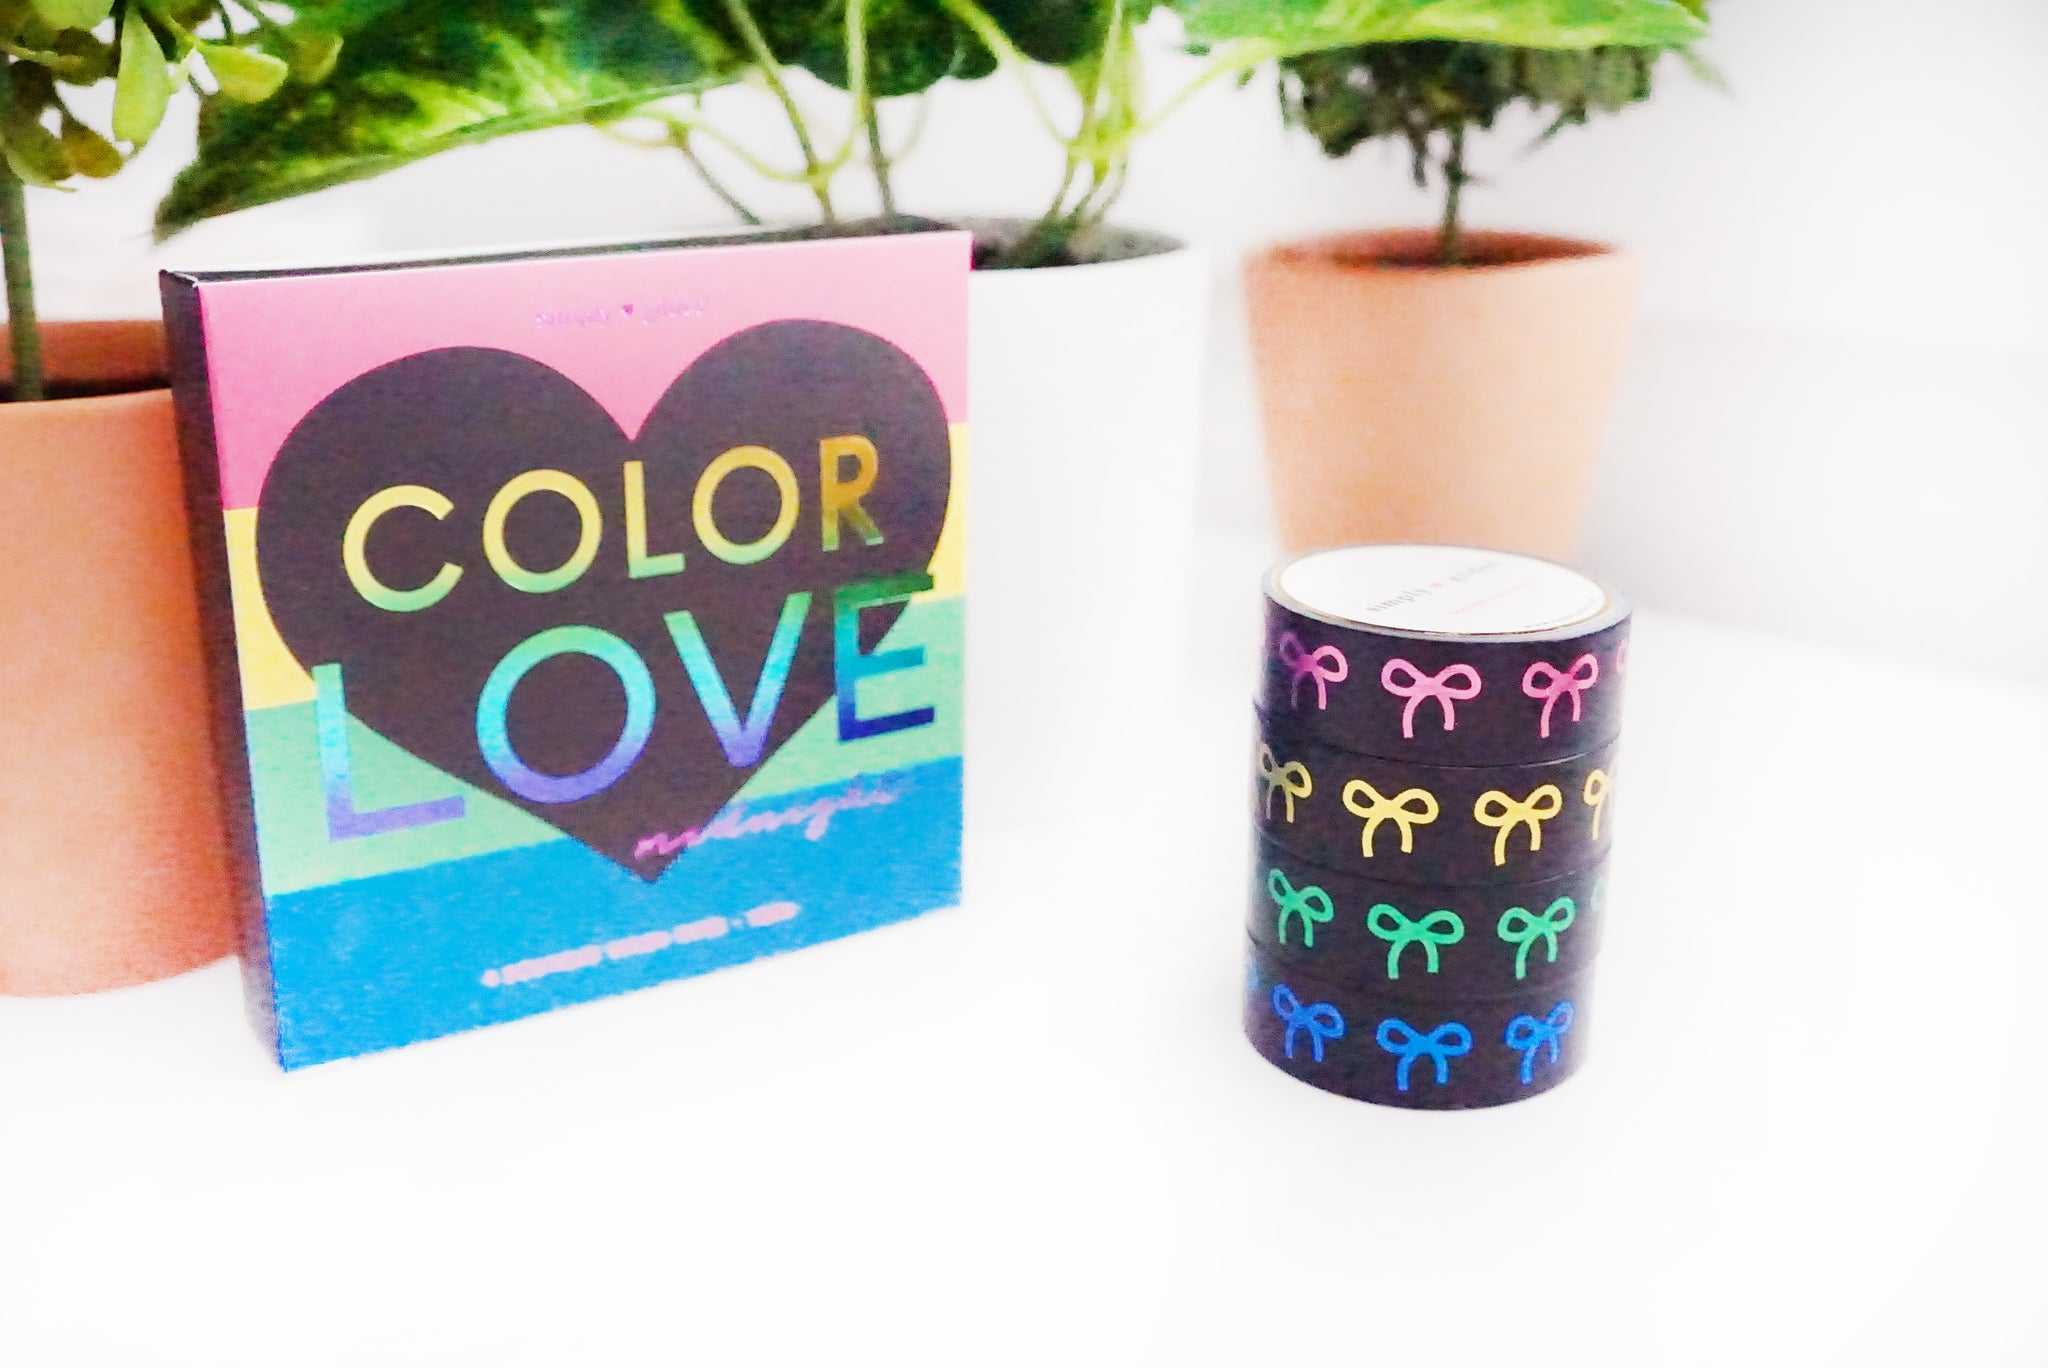 BOX SET of 4 - Color Love MIDNIGHT 15mm + pink/gold/green/blue foil bows (February 28 Release)